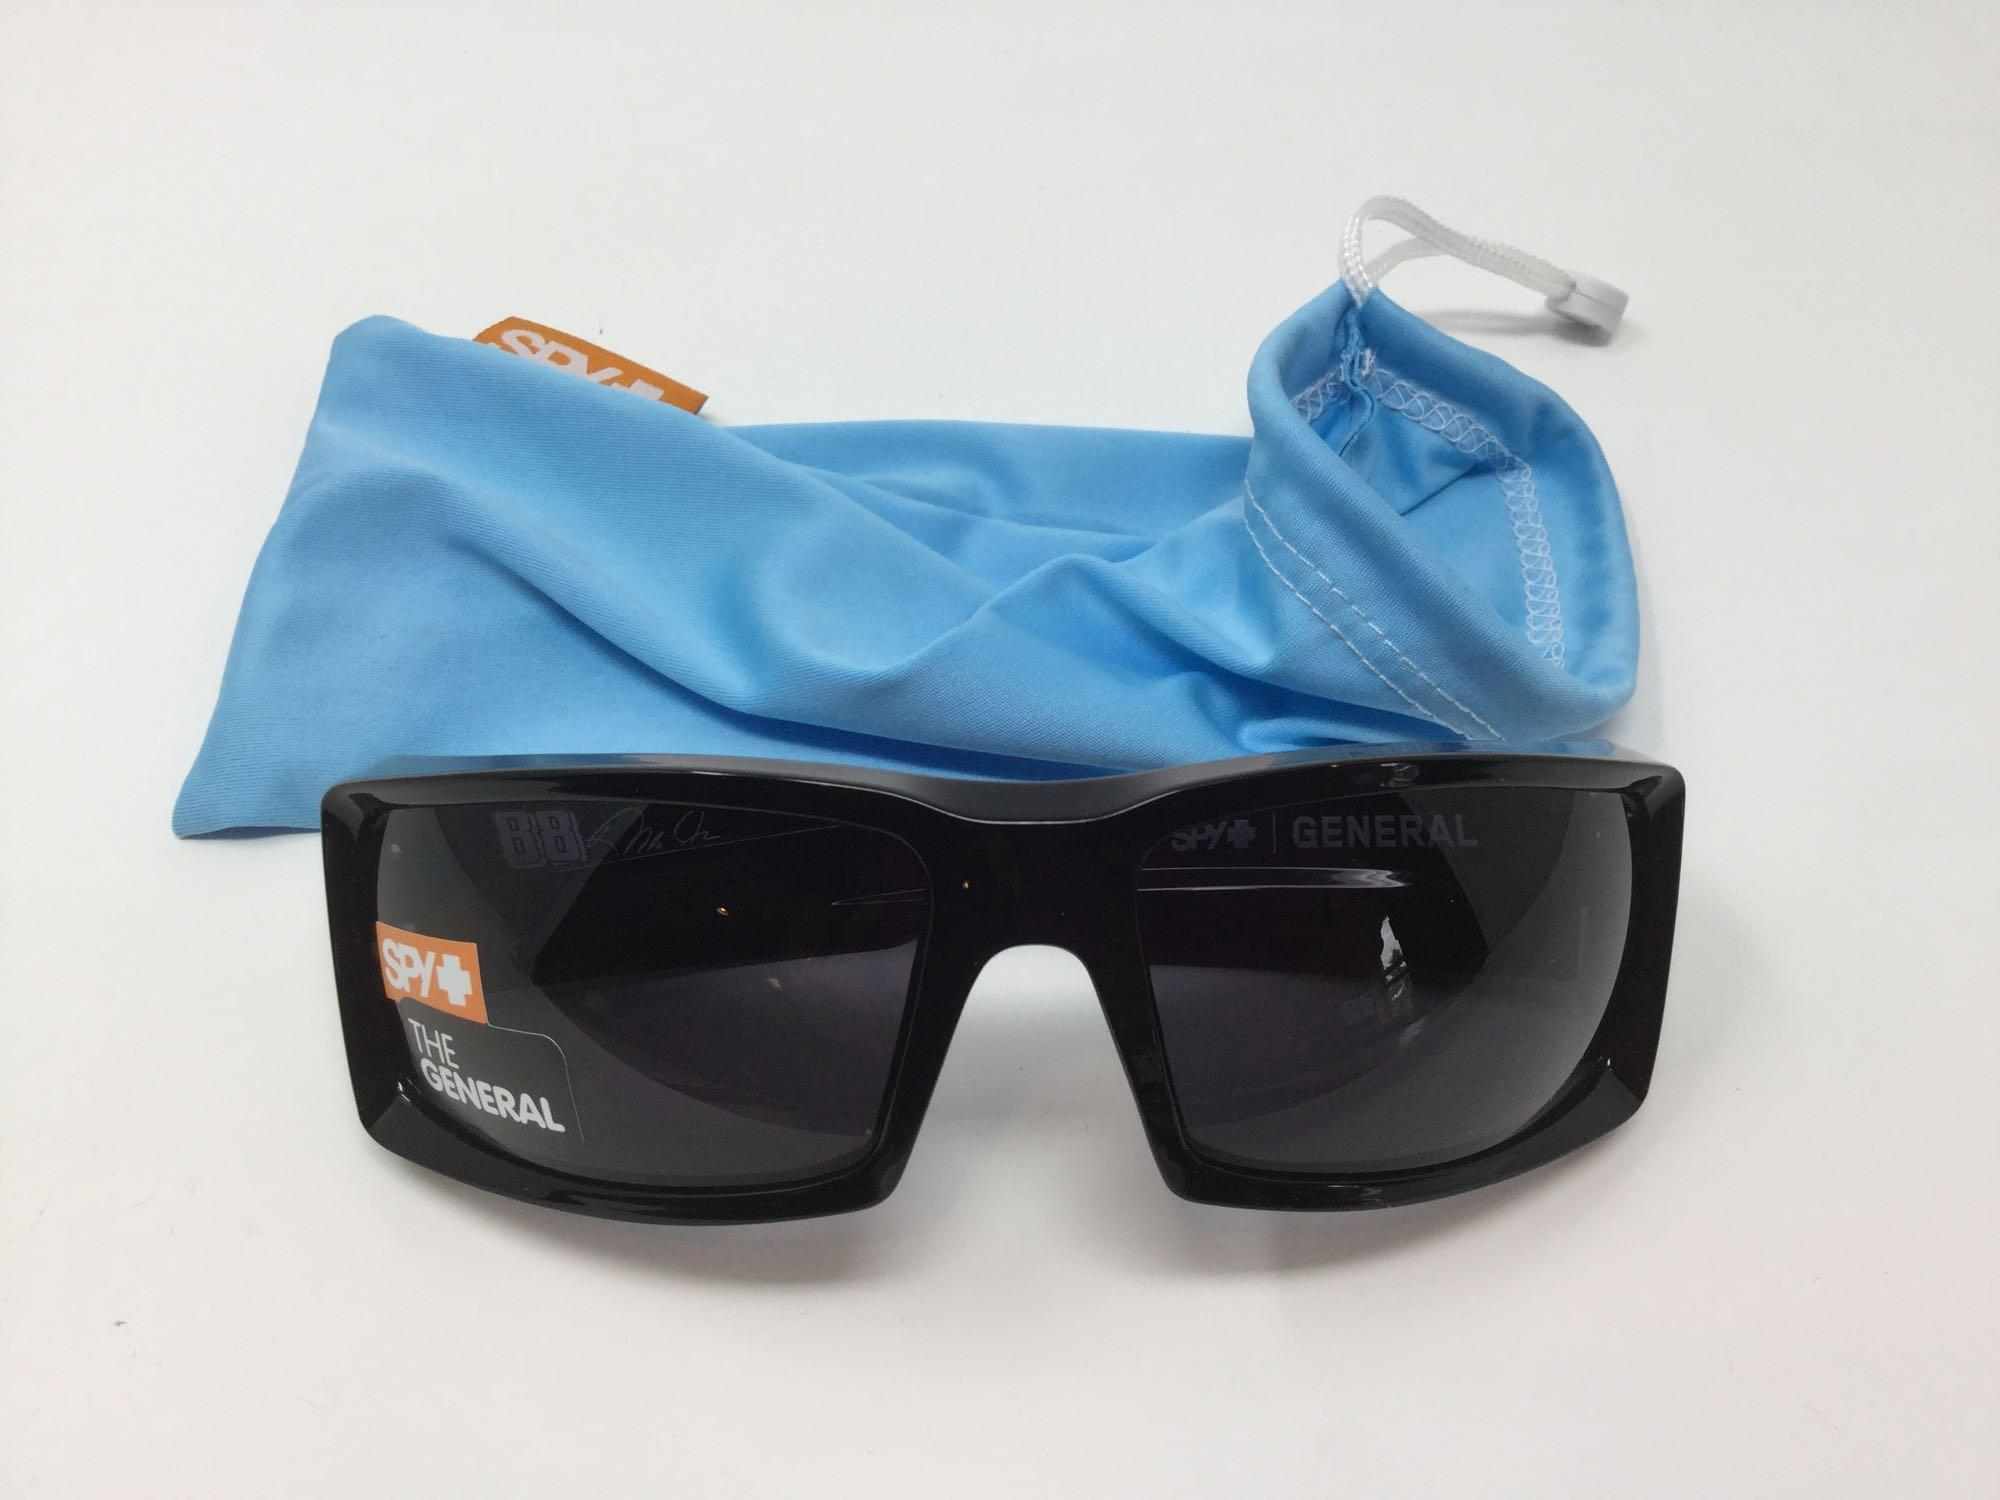 "Lot 14 - Spy Sunglasses ""The General"""